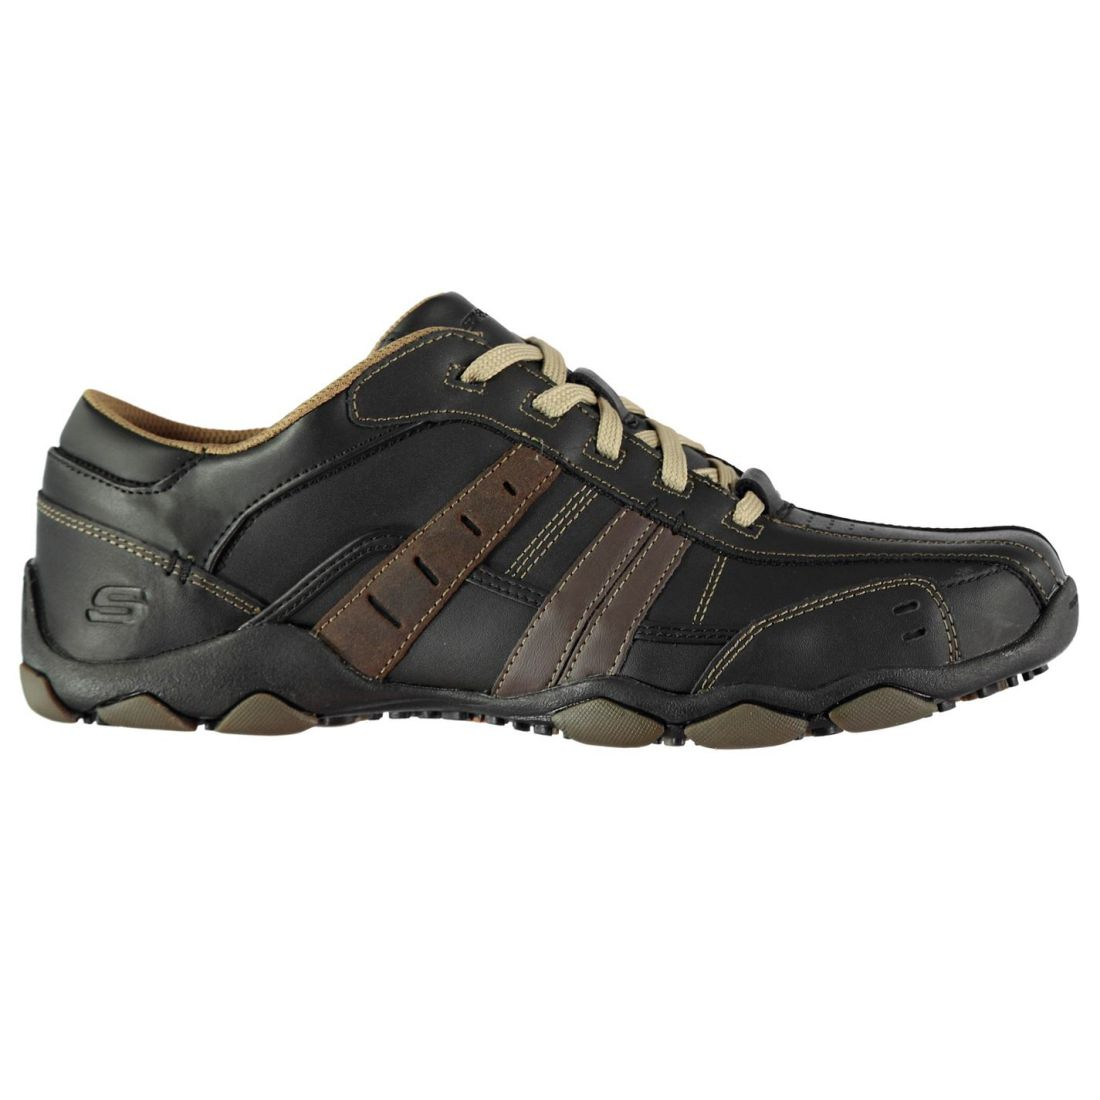 Skechers Diam Vasse Turnschuhe Mens Gents Everyday schuhe Laces Fastened Padded